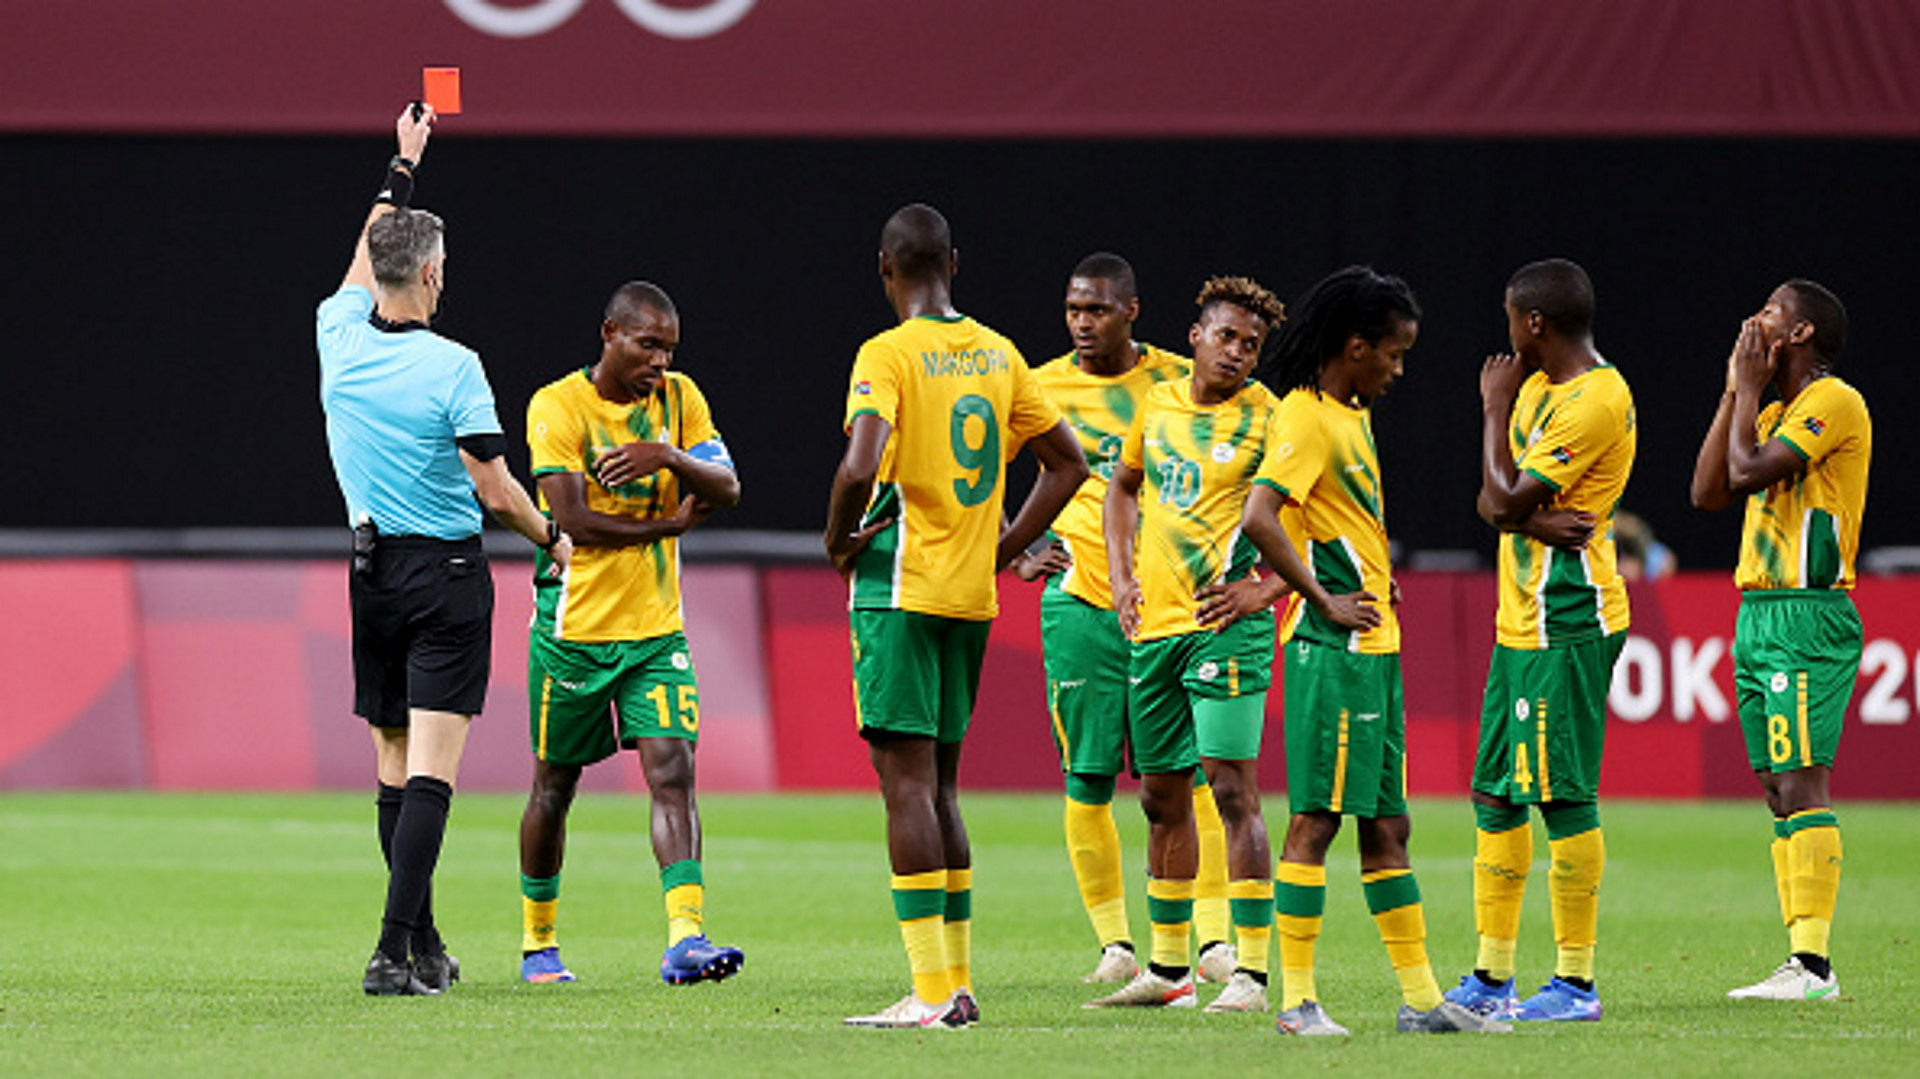 Olympics football: South Africa player ratings vs Mexico - Malepe sent off